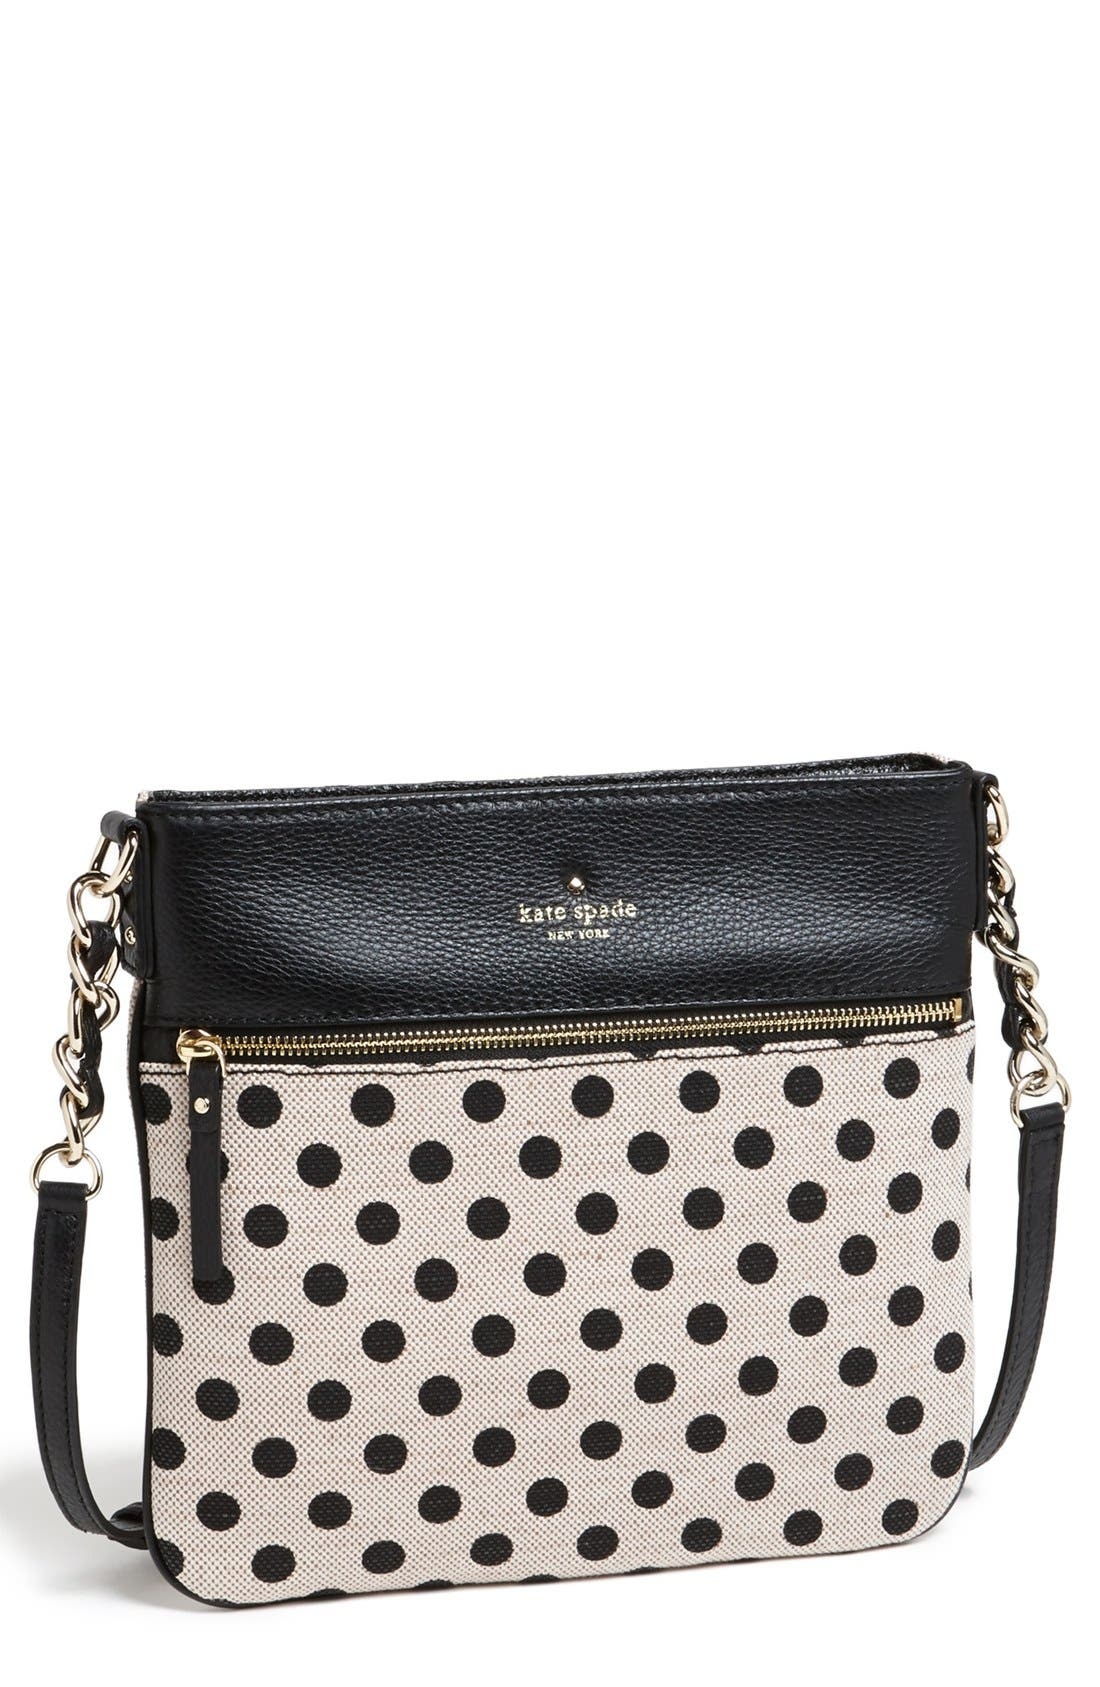 Main Image - kate spade new york 'cobble hill - ellen' crossbody bag